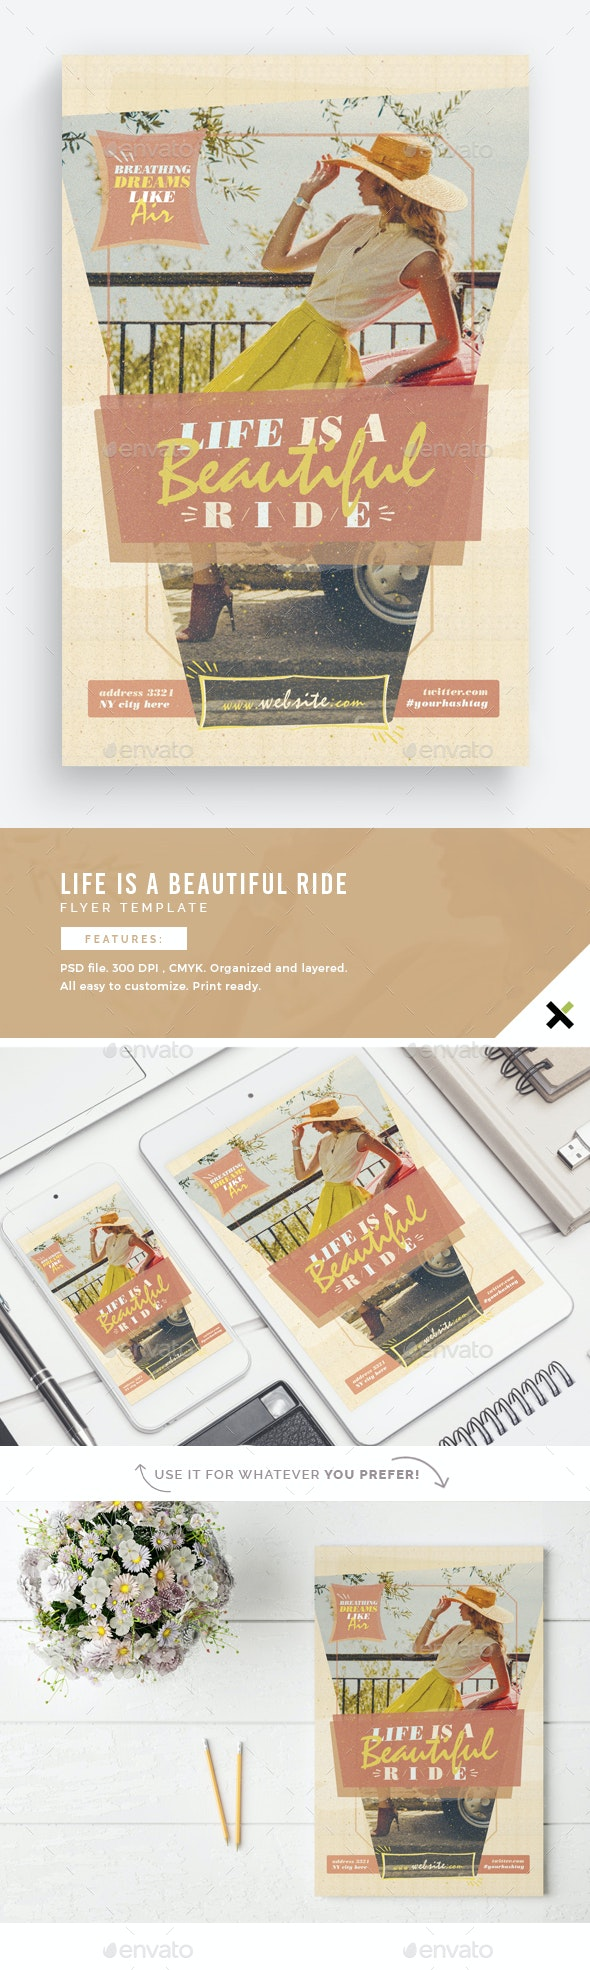 Life Is A Beautiful Ride Flyer Template - Flyers Print Templates